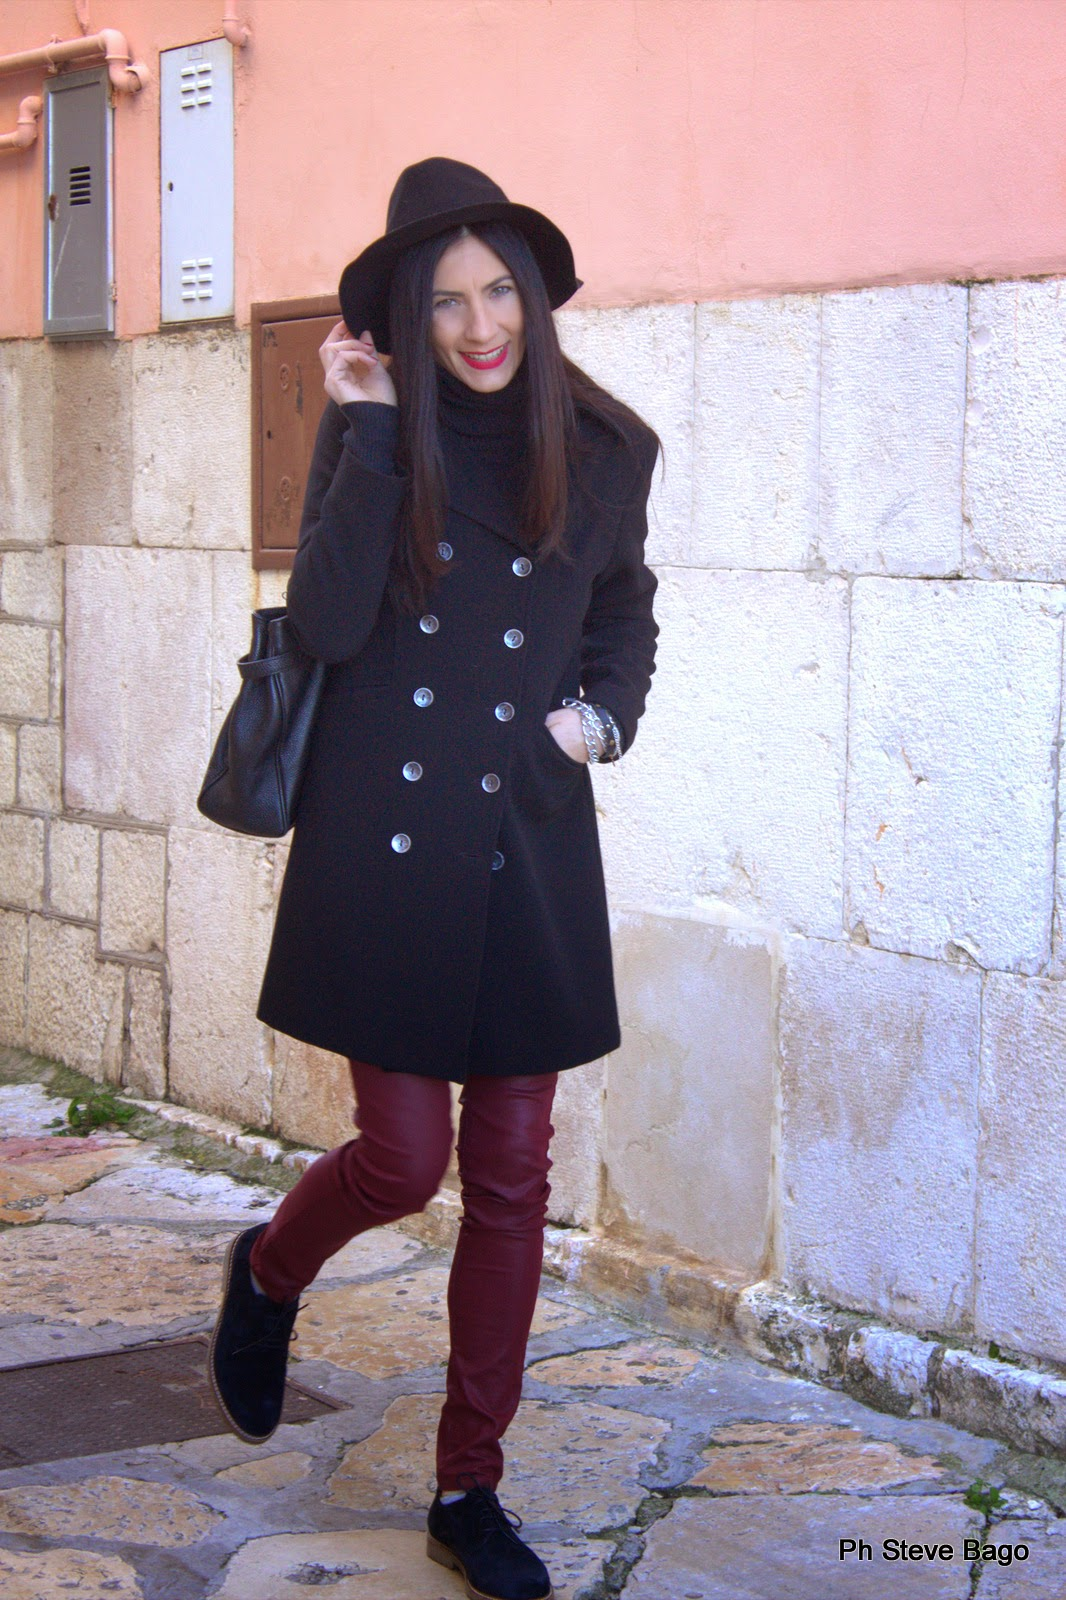 themorasmoothie, fashionblog, fashionblogger, fashion, outfit, look, outfitoftheday, lookoftheday, marsala, ska, skashoes, girl, me, model, fashionista, fashionable, instafashion, shopping, shopping on line, camaieu, shoes, pant, bag, coat, hat, primark